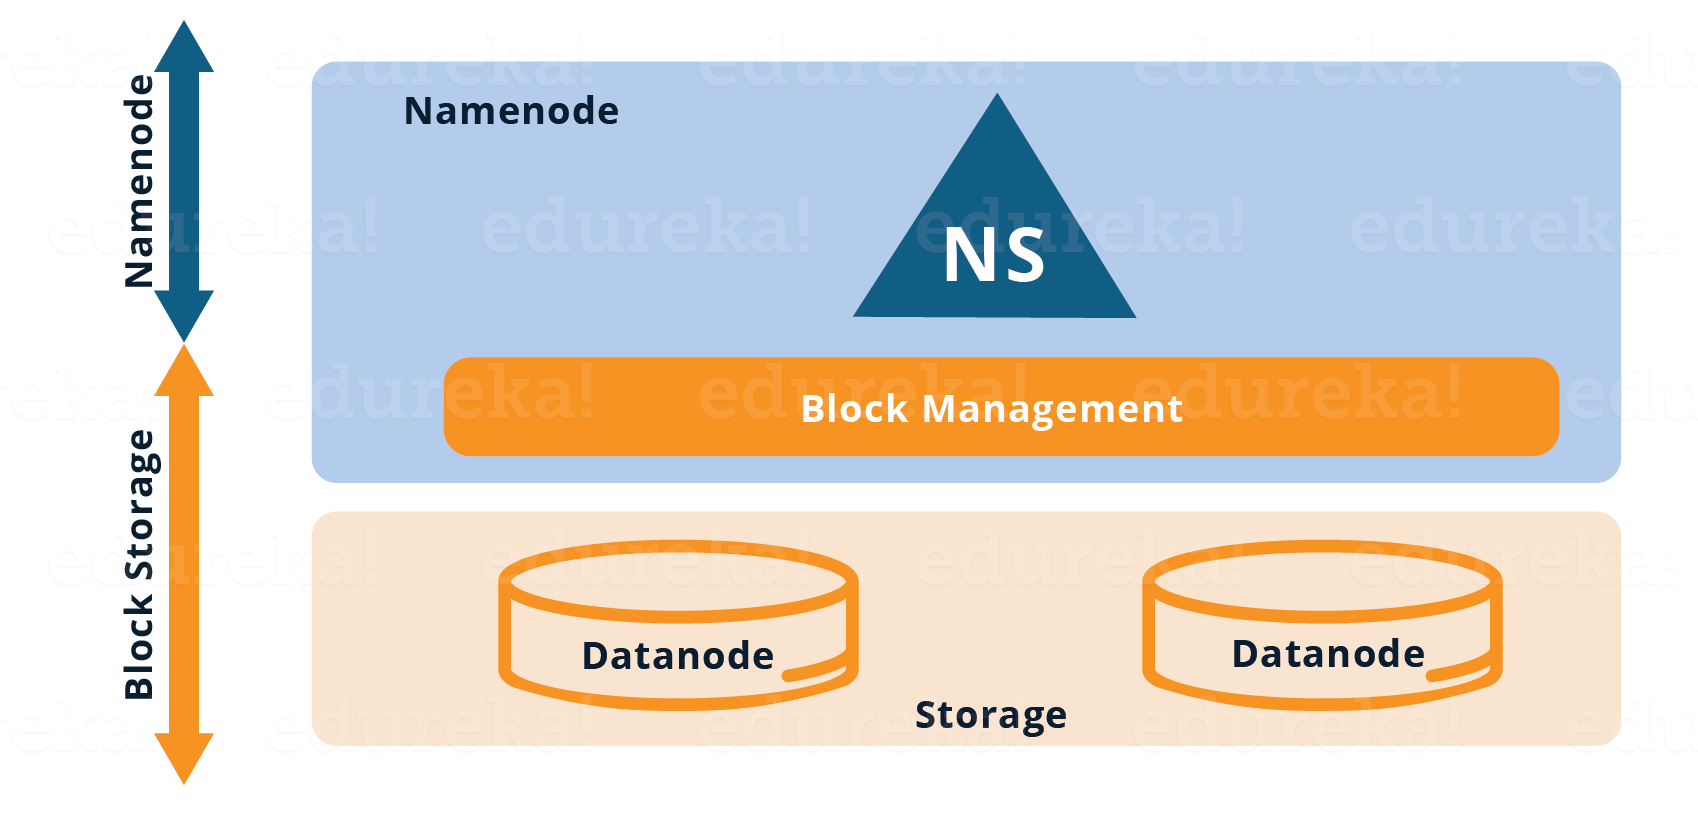 Single Namespace HDFS Architecture - Overview of Hadoop 2.0 Cluster Architecture Federation - Edureka